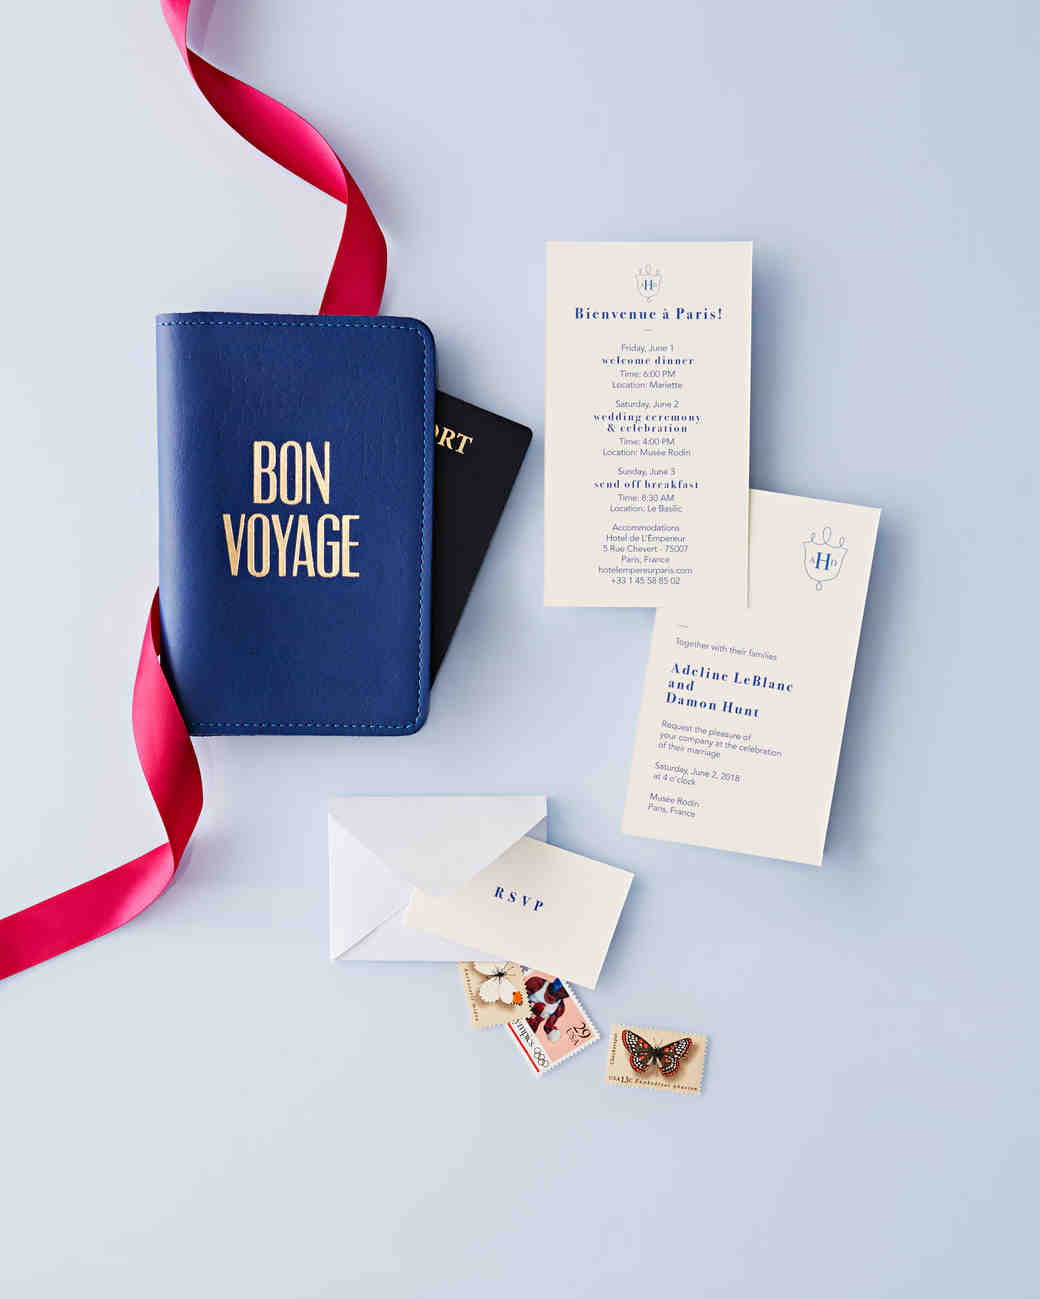 When Do I Send Out Wedding Invites: 38 Destination Wedding Invitations From Real Weddings